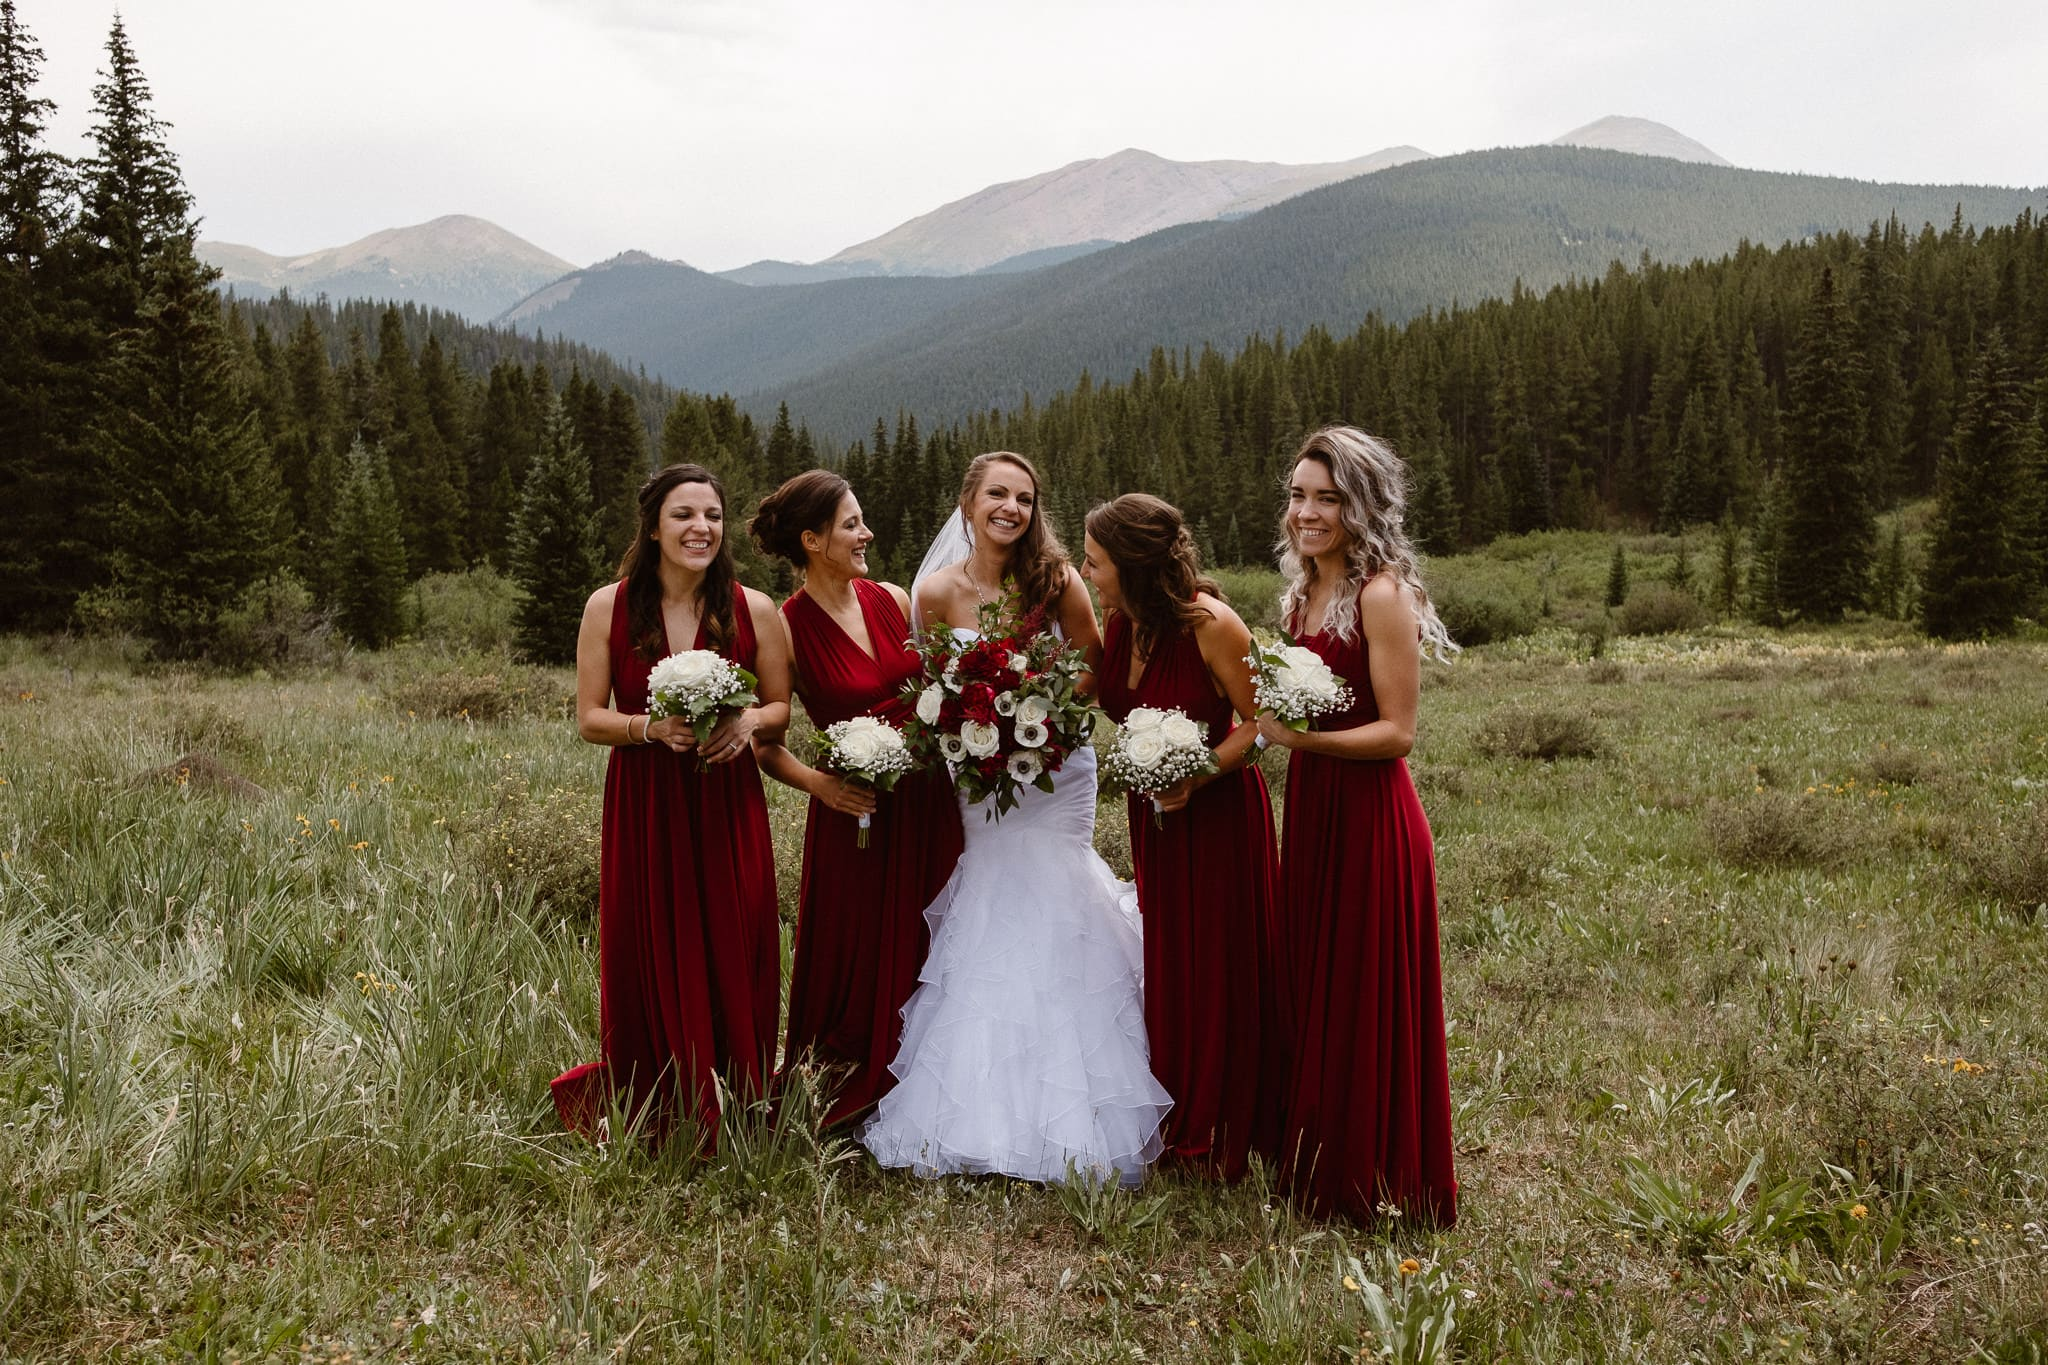 Lodge at Breckenridge Wedding Photographer, Colorado mountain wedding photographer, intimate wedding, bride with bridesmaids, dark red bridesmaid dresses, white and dark red bouquets, mermaid wedding dress